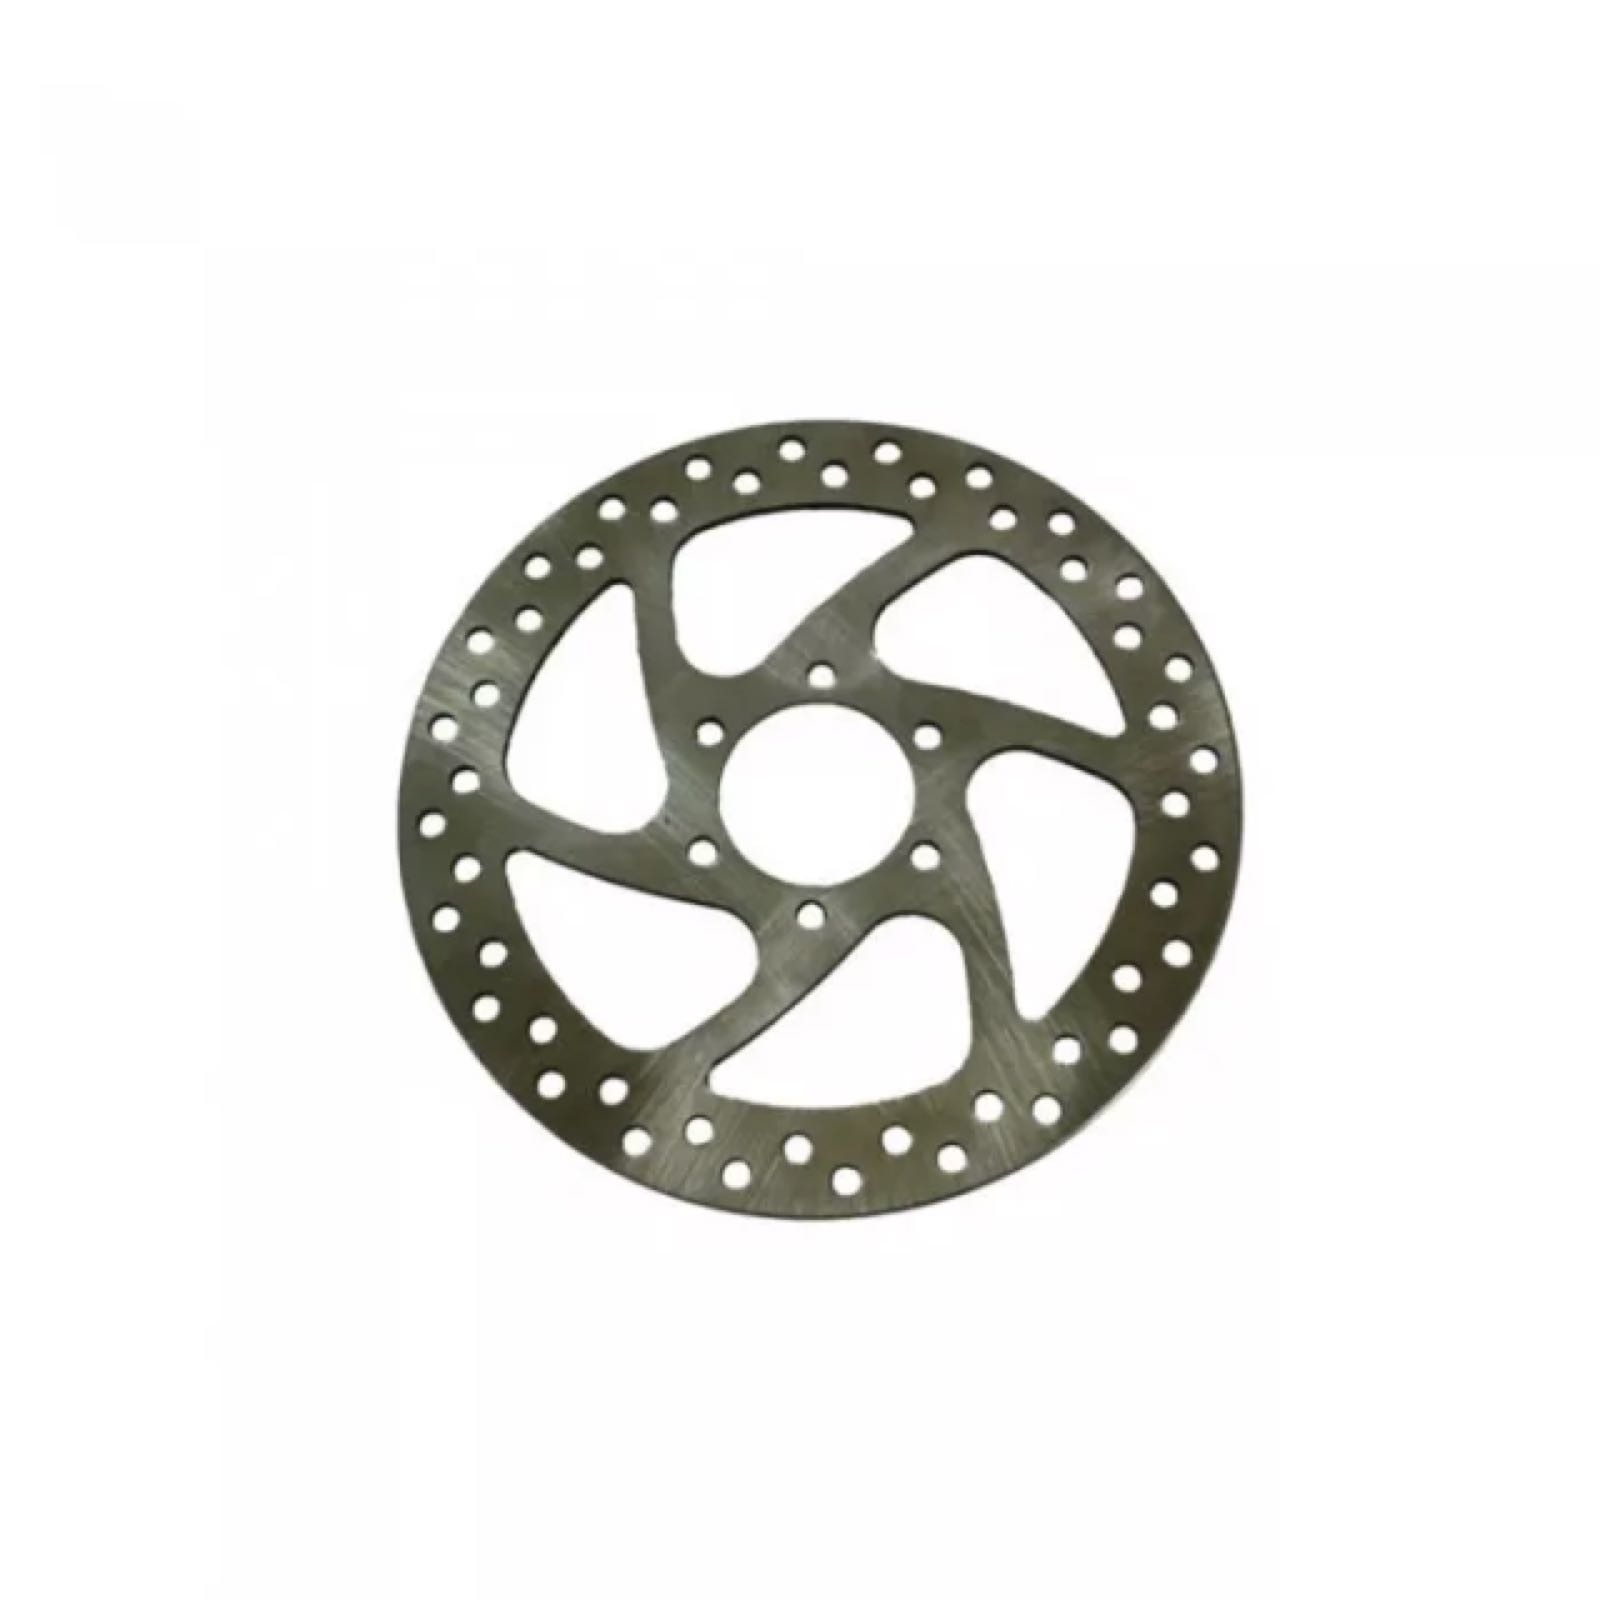 Watta brake disc (bromsskiva)